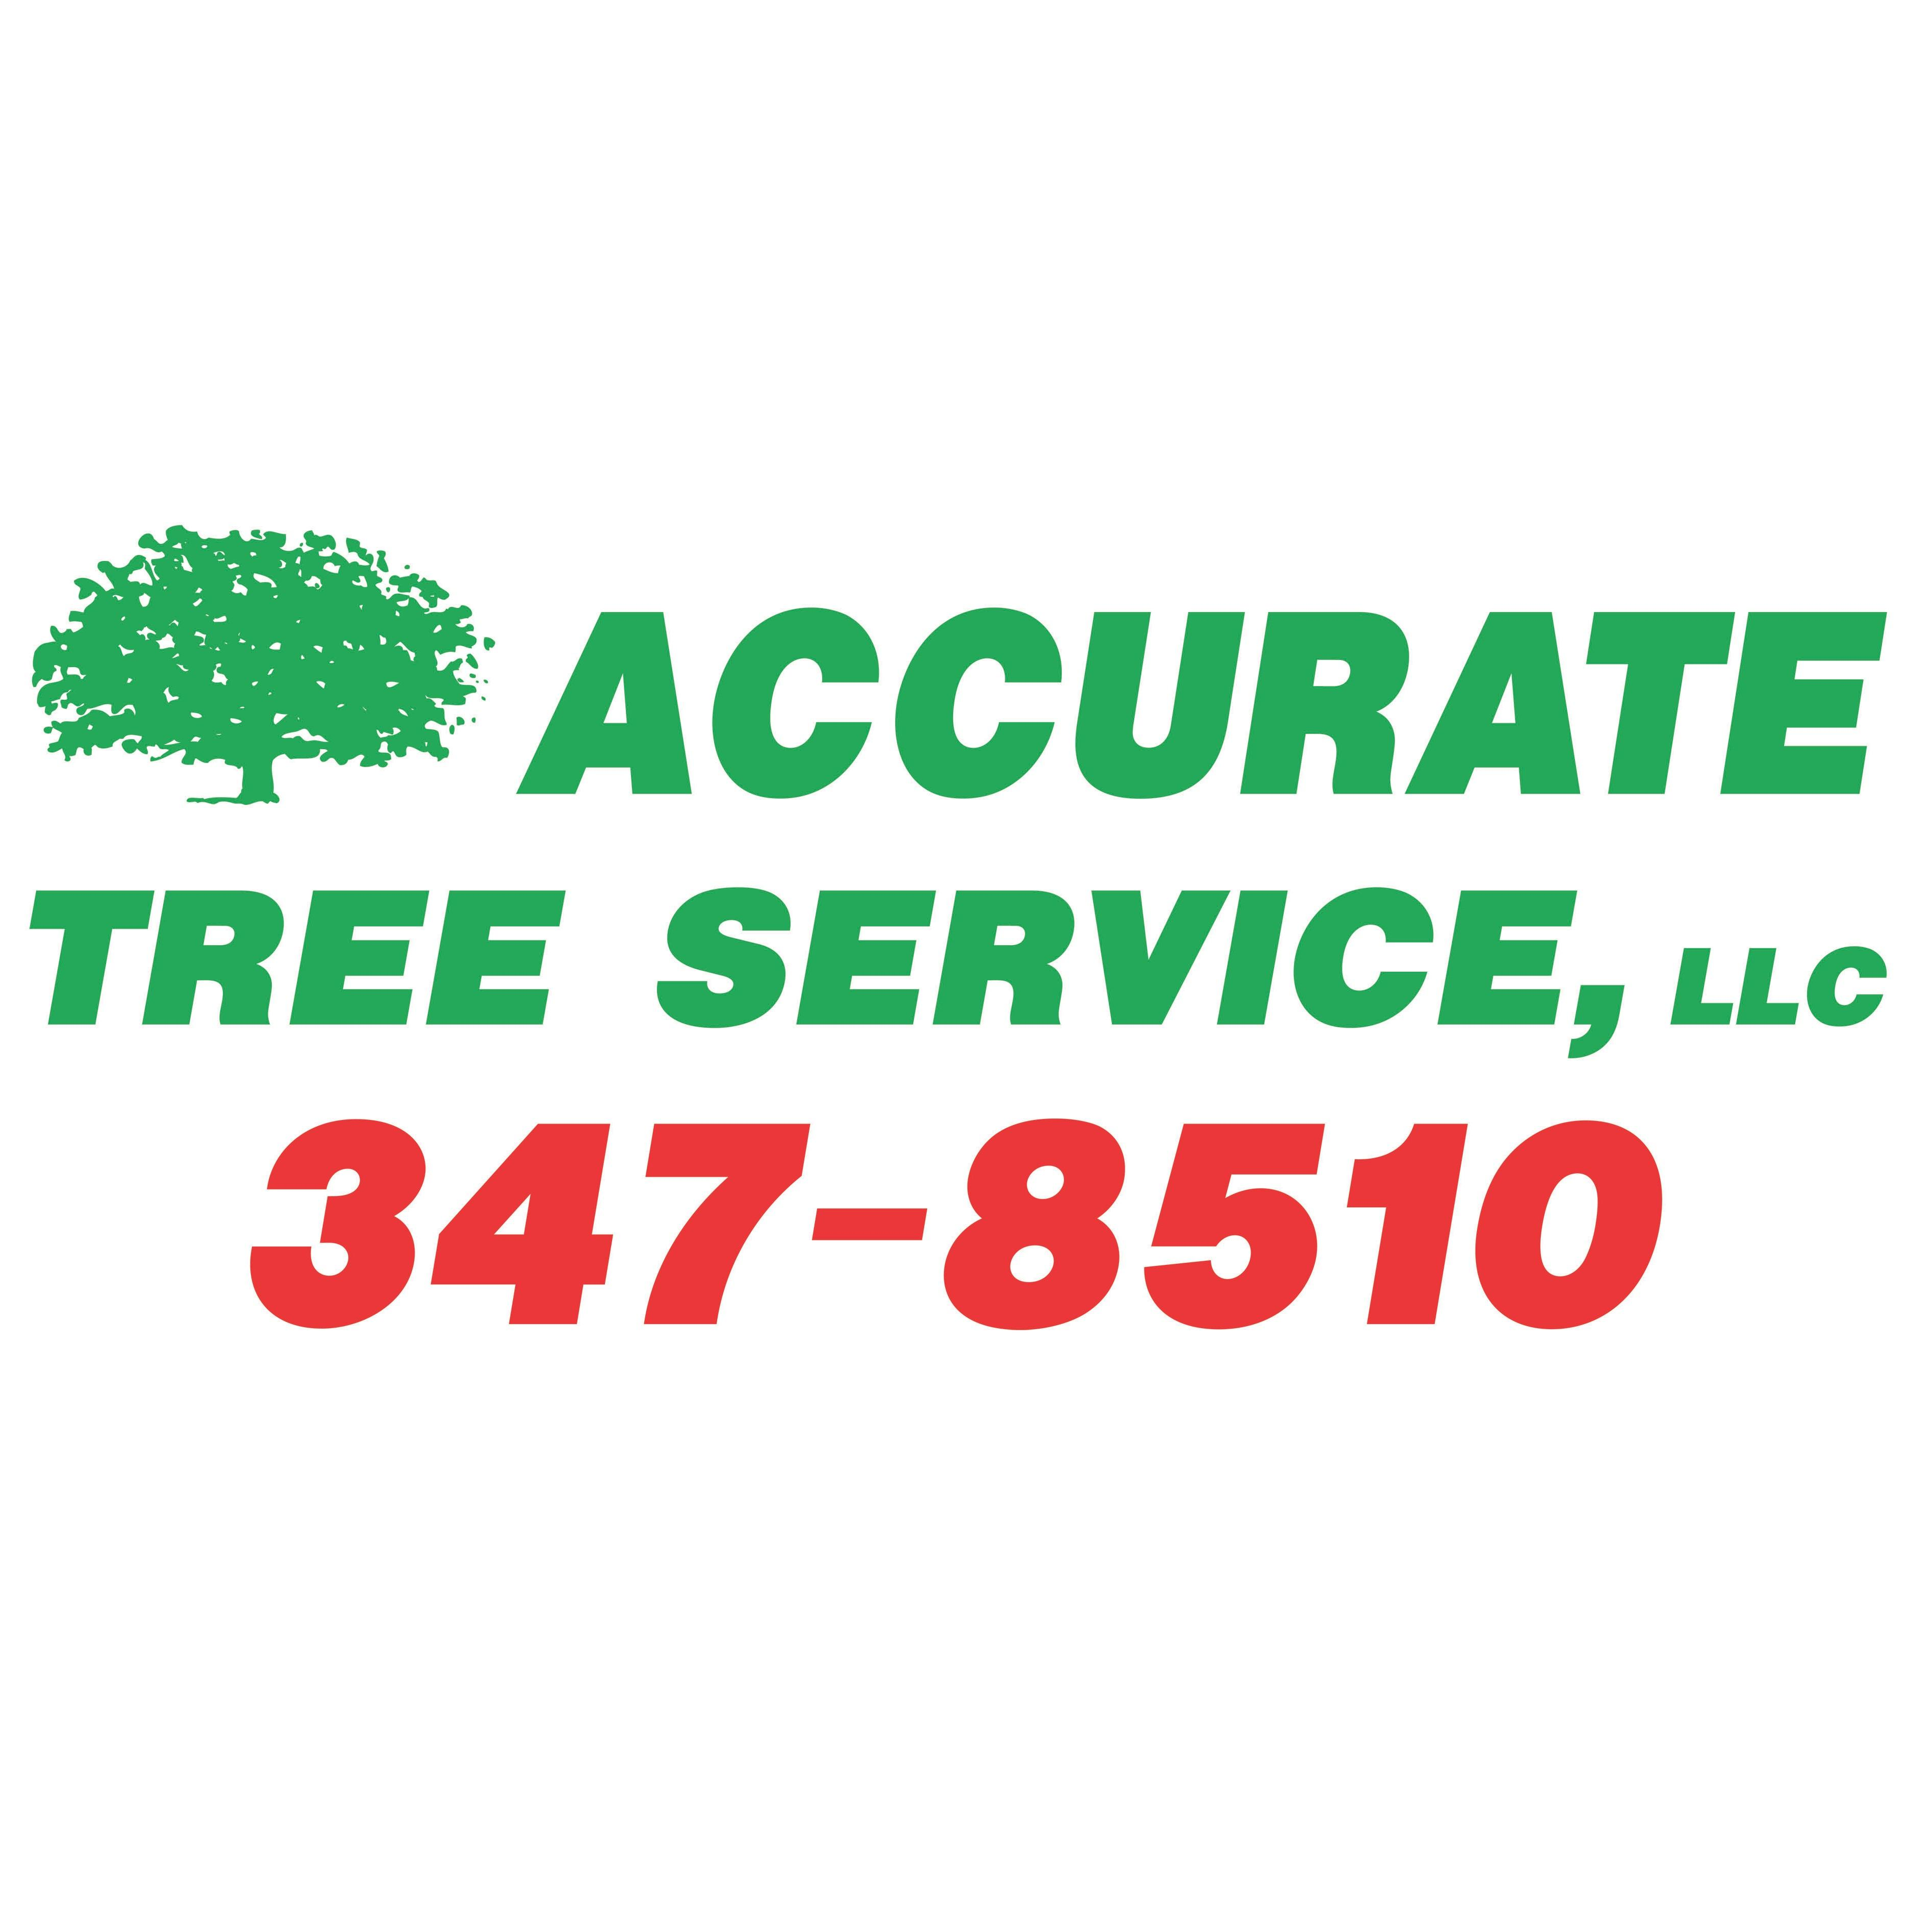 Accurate Tree Service and Stump Grinding, LLC